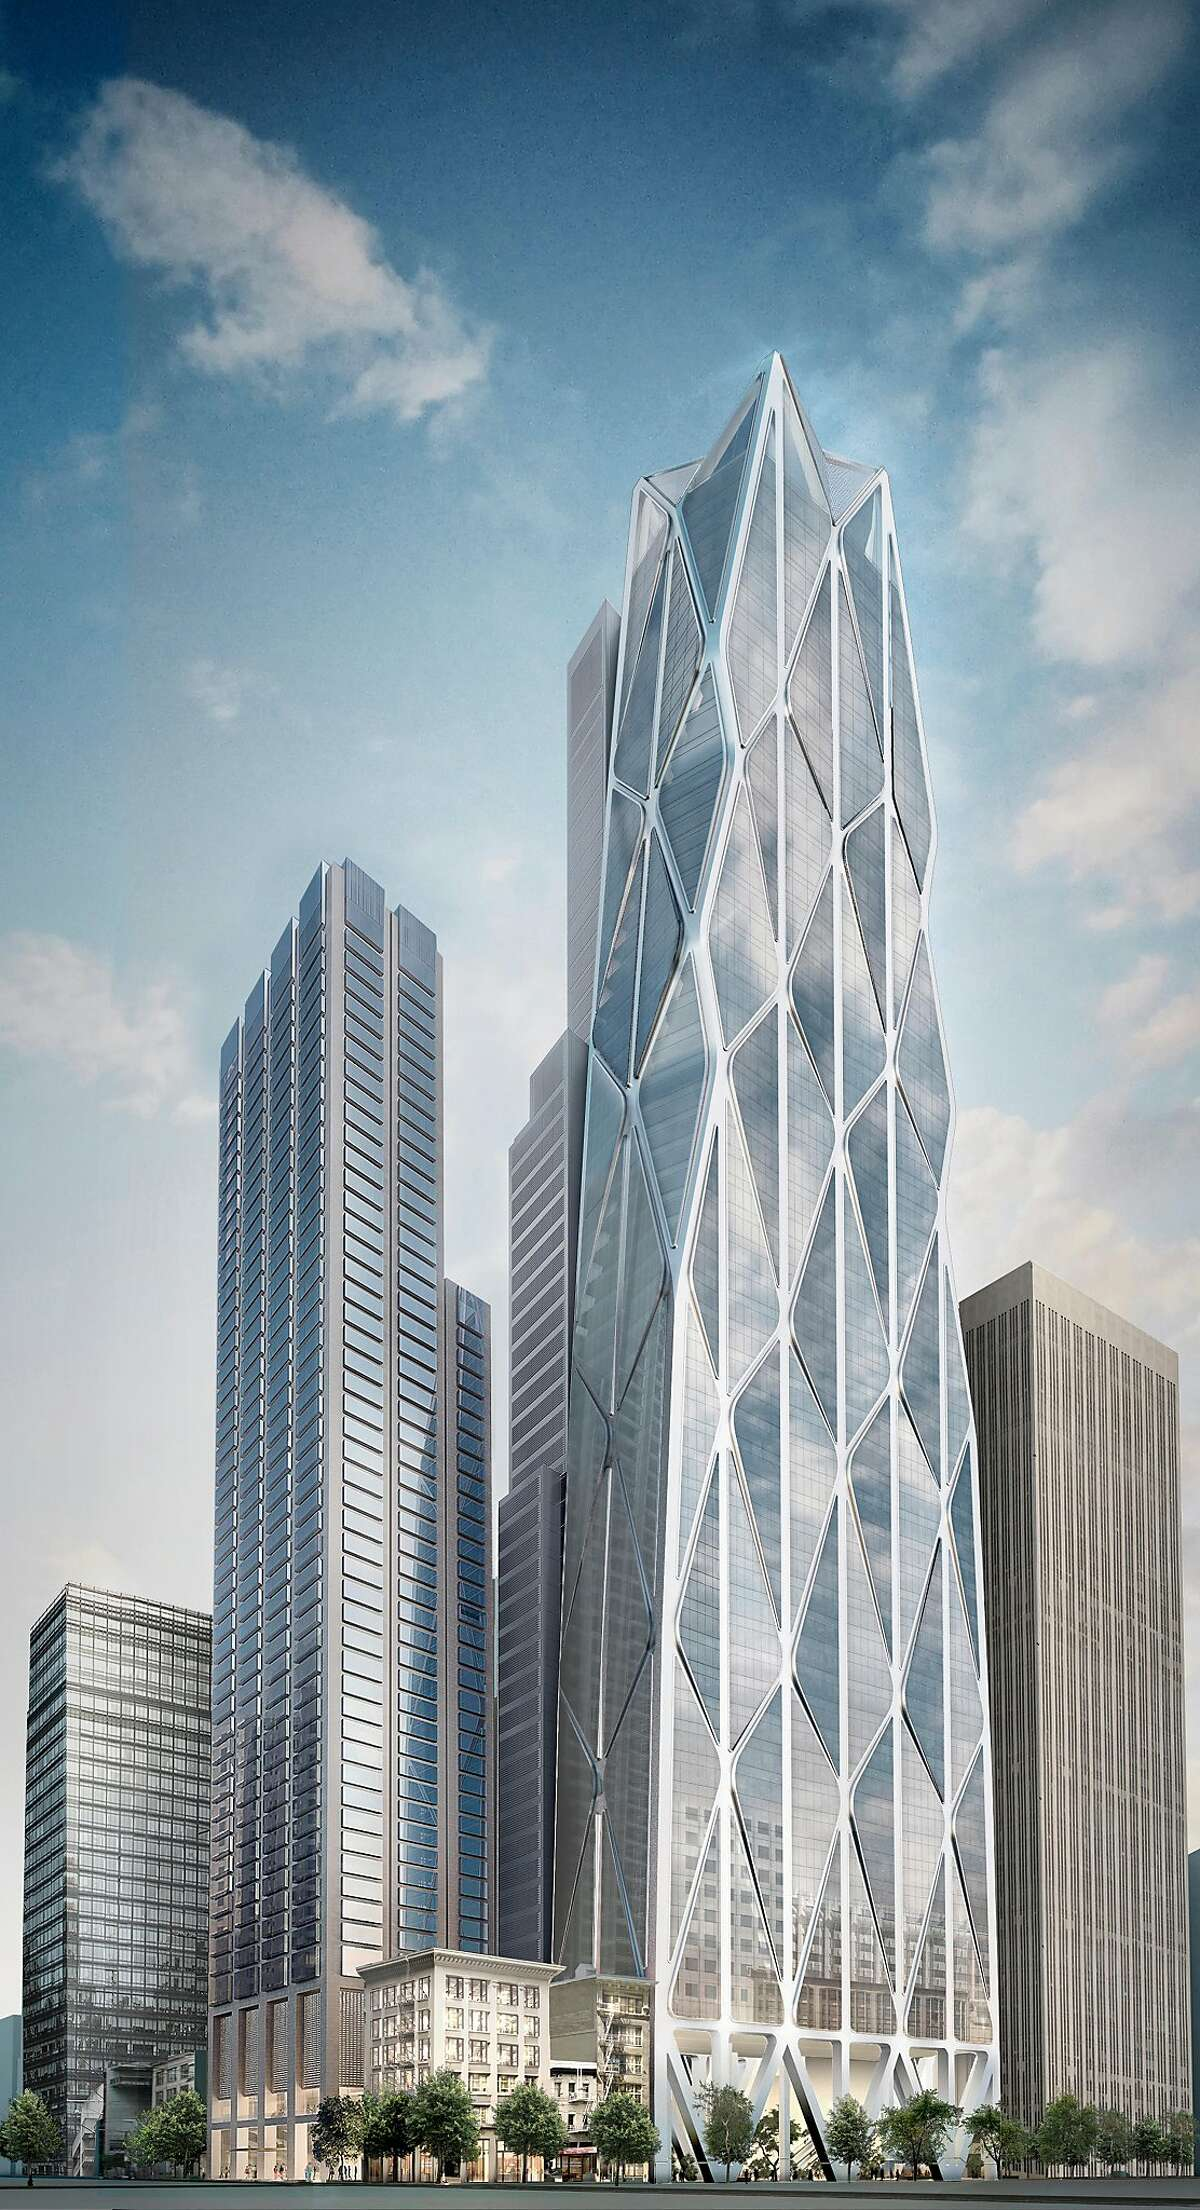 Oceanwide Center, designed by Foster + Partners with Heller Manus Architects, will include a 910-foot tower on First Street and a 625-foot high-rise on Mission Street. The complex will include housing, offices, a hotel and a public plaza. The official groundbreaking is Dec. 8, 2016 and the buildings are scheduled to open to the public by 2021.